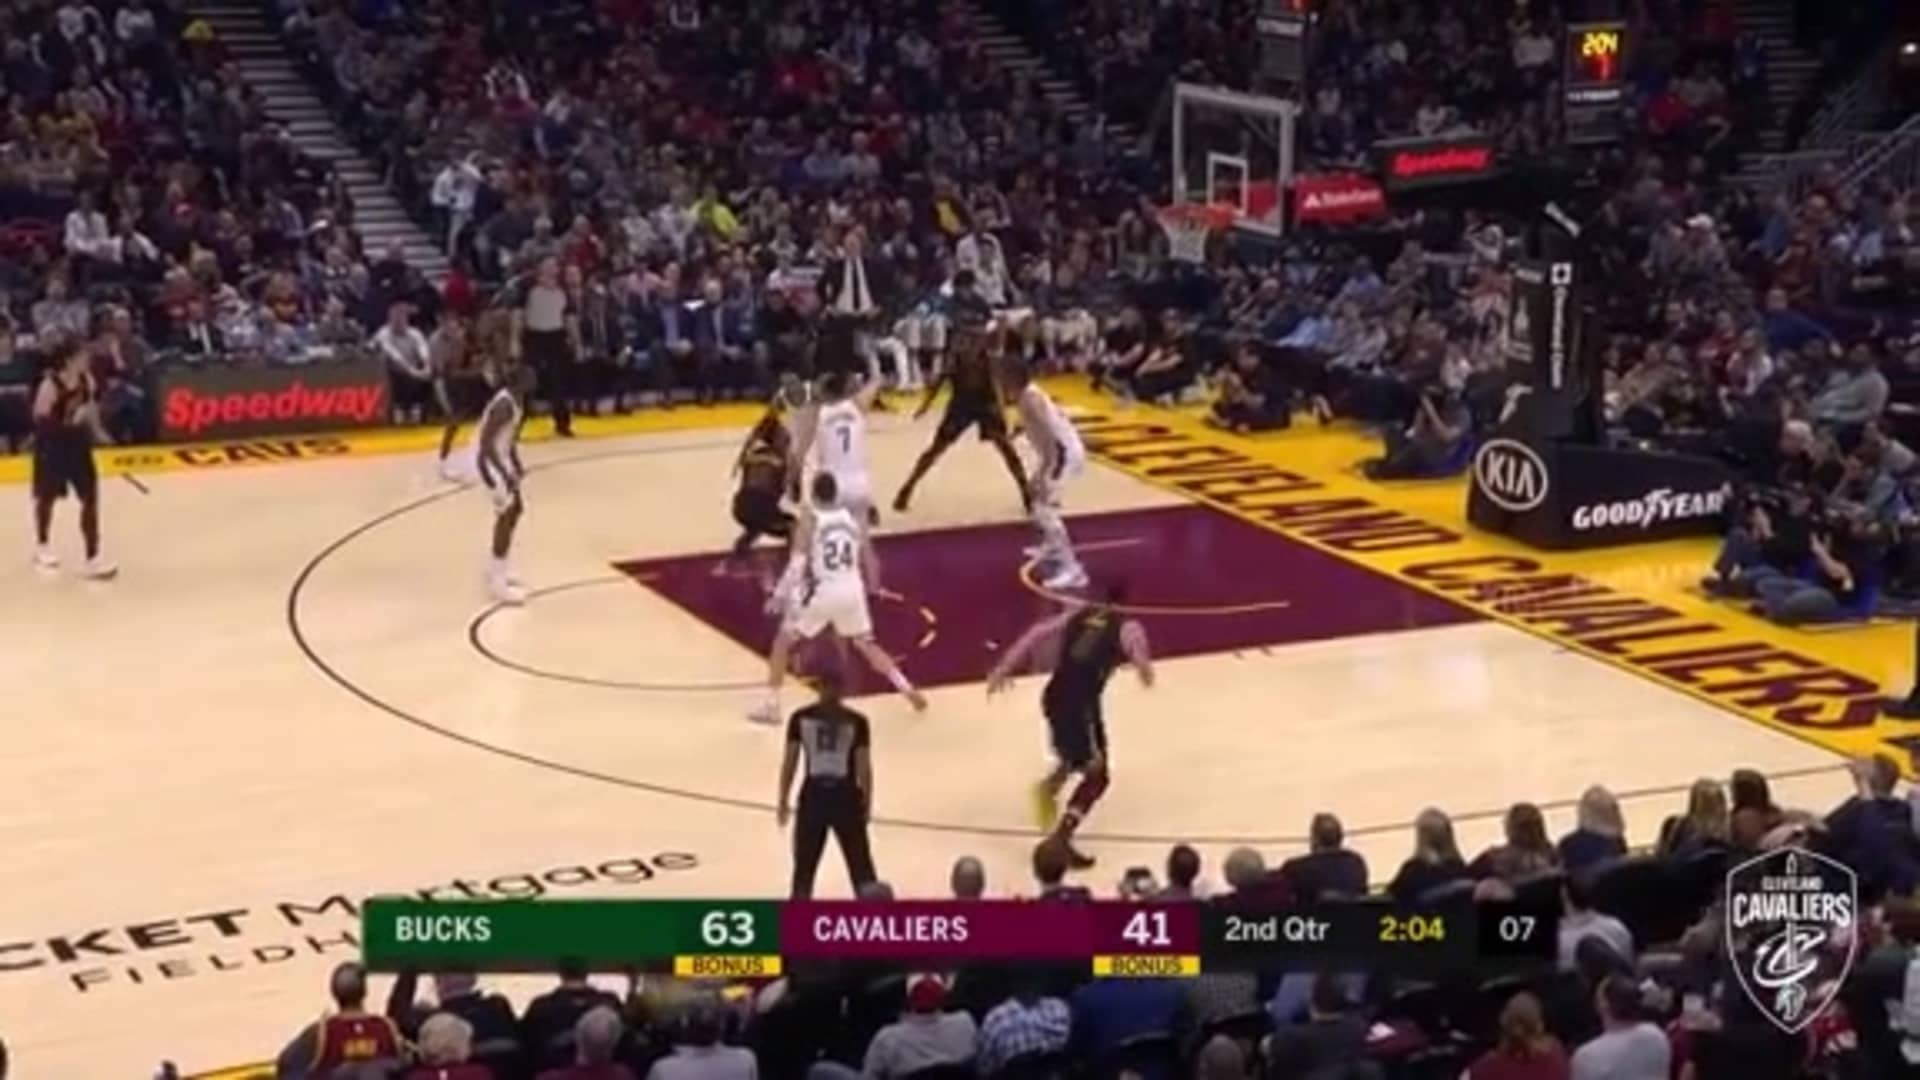 T.T. Throws Down His Third Big Dunk of the Night